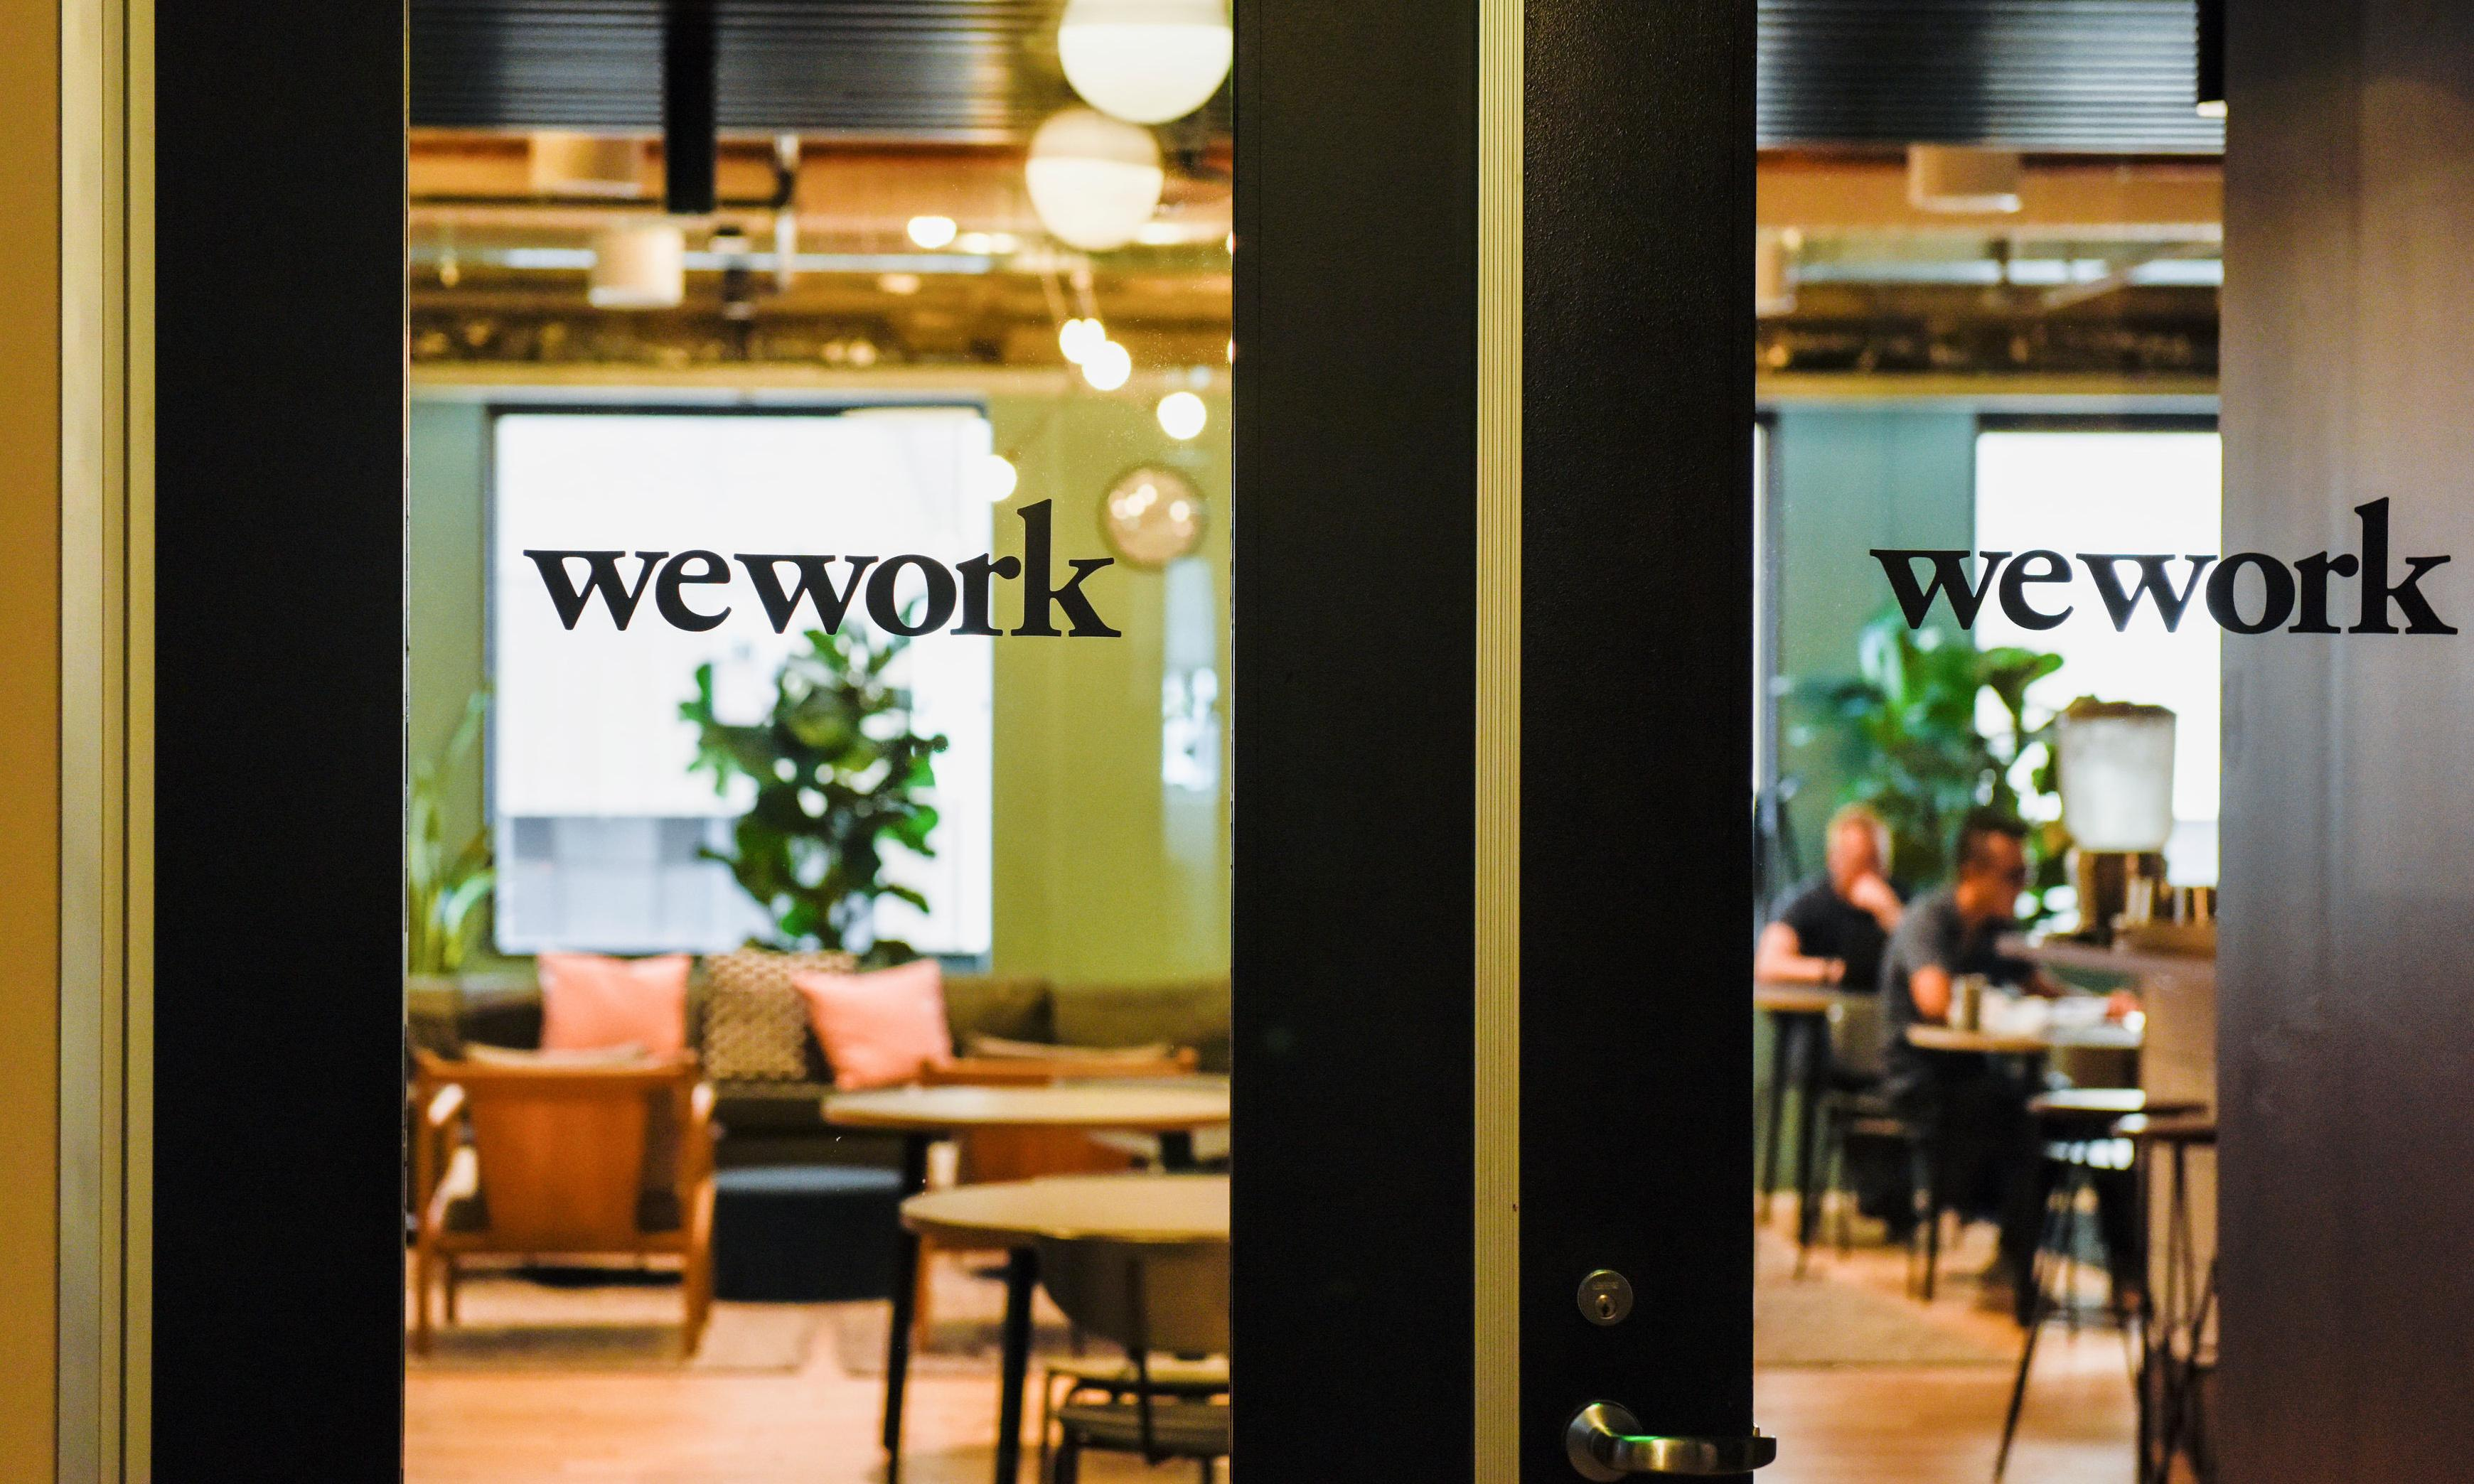 WeWork boss to walk away with $1.7bn after SoftBank rescue deal